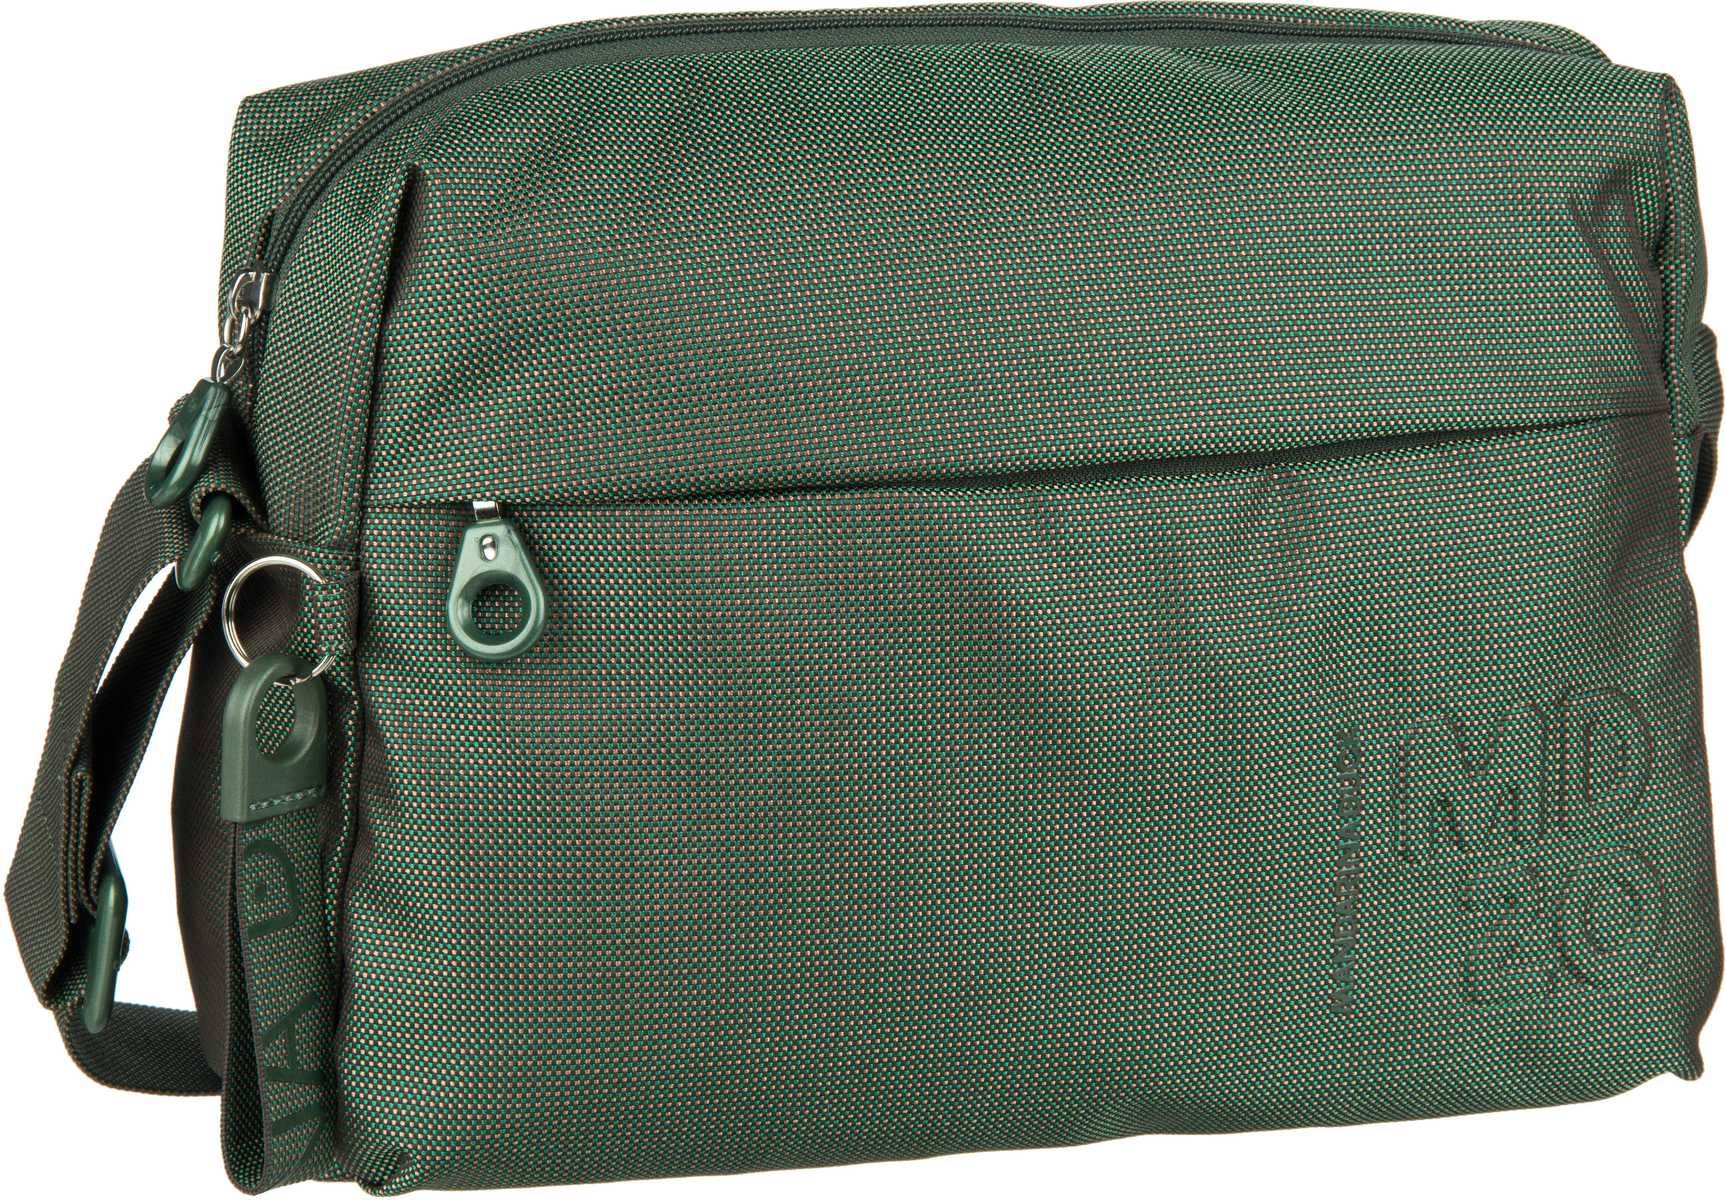 Umhängetasche MD20 Crossover Bag QMTV8 Black Forest